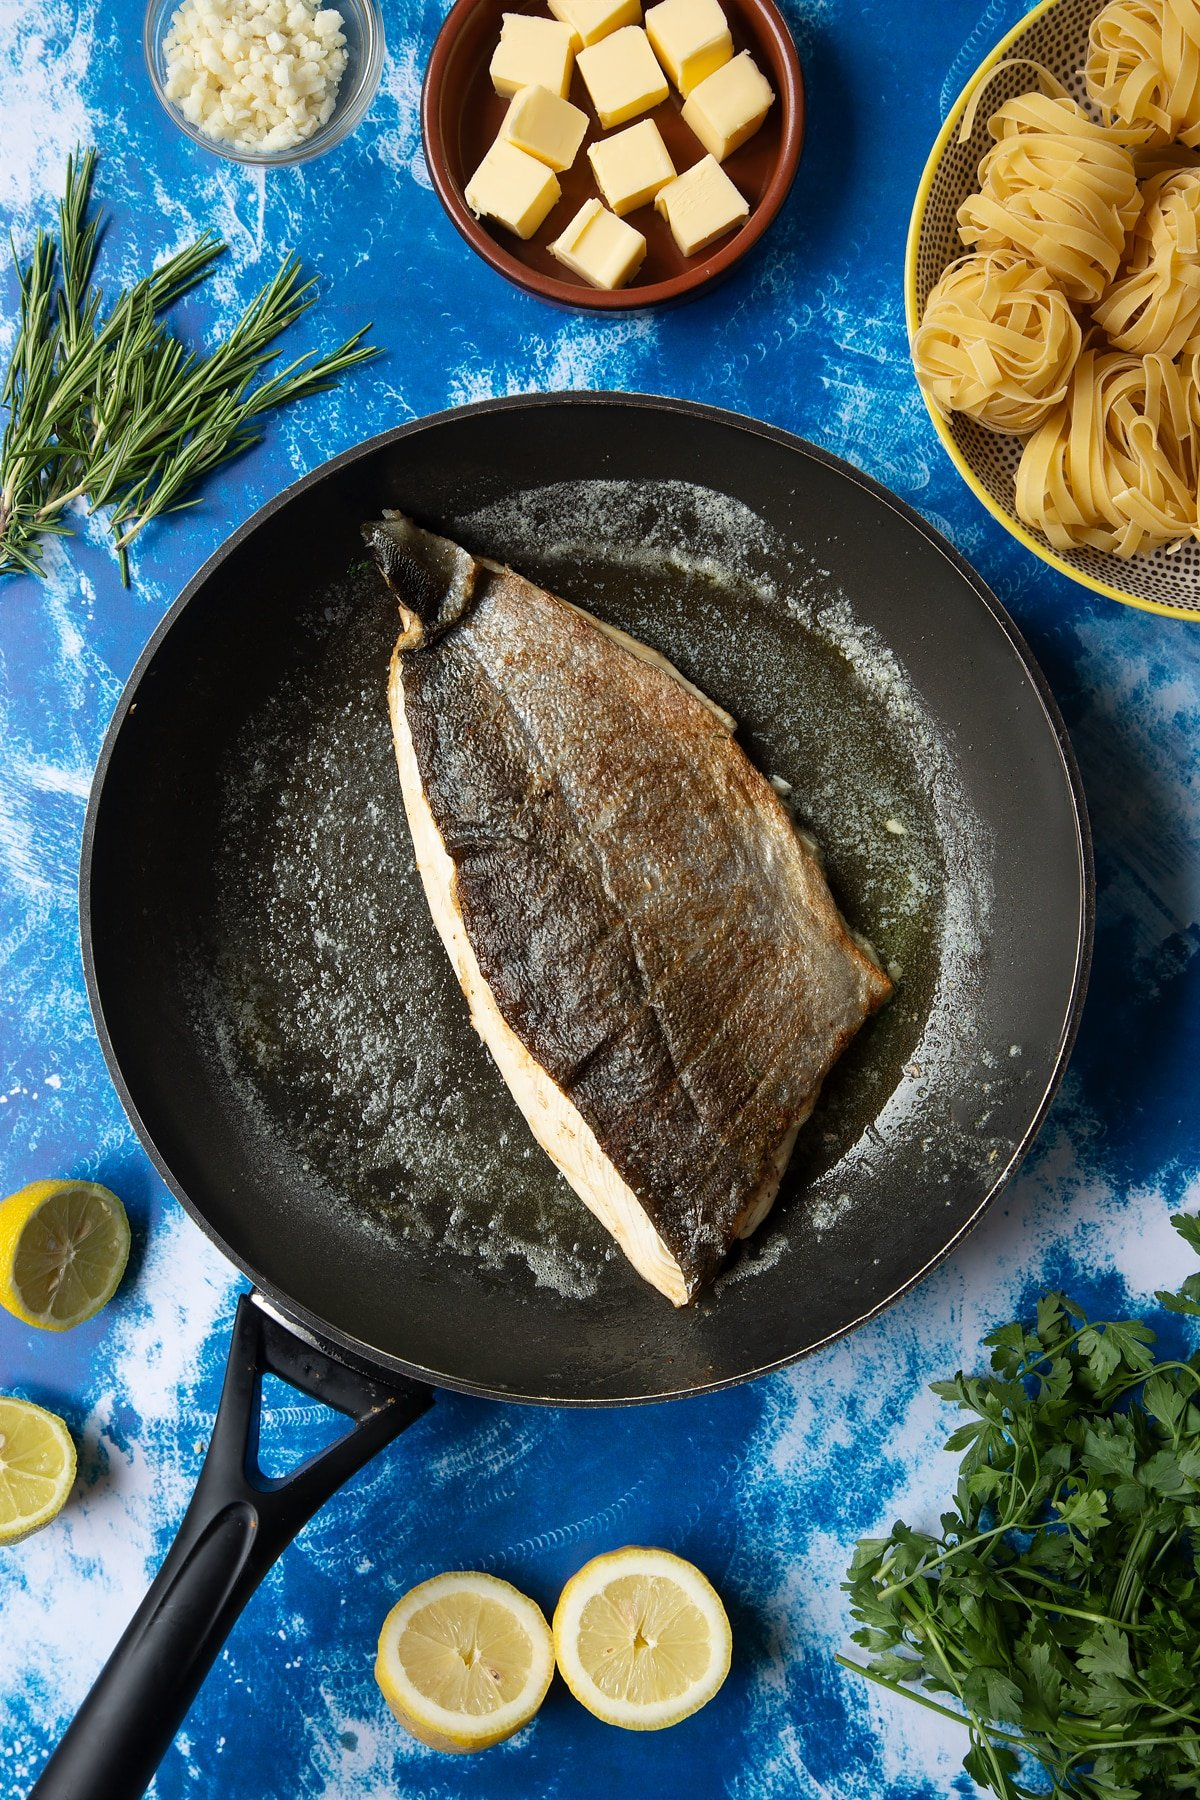 A large frying pan with melted butter and a fish fillet, skin side up. The skin is cooked and crisp. Ingredients to make Dutch Yellowtail tagliatelle surround the pan.